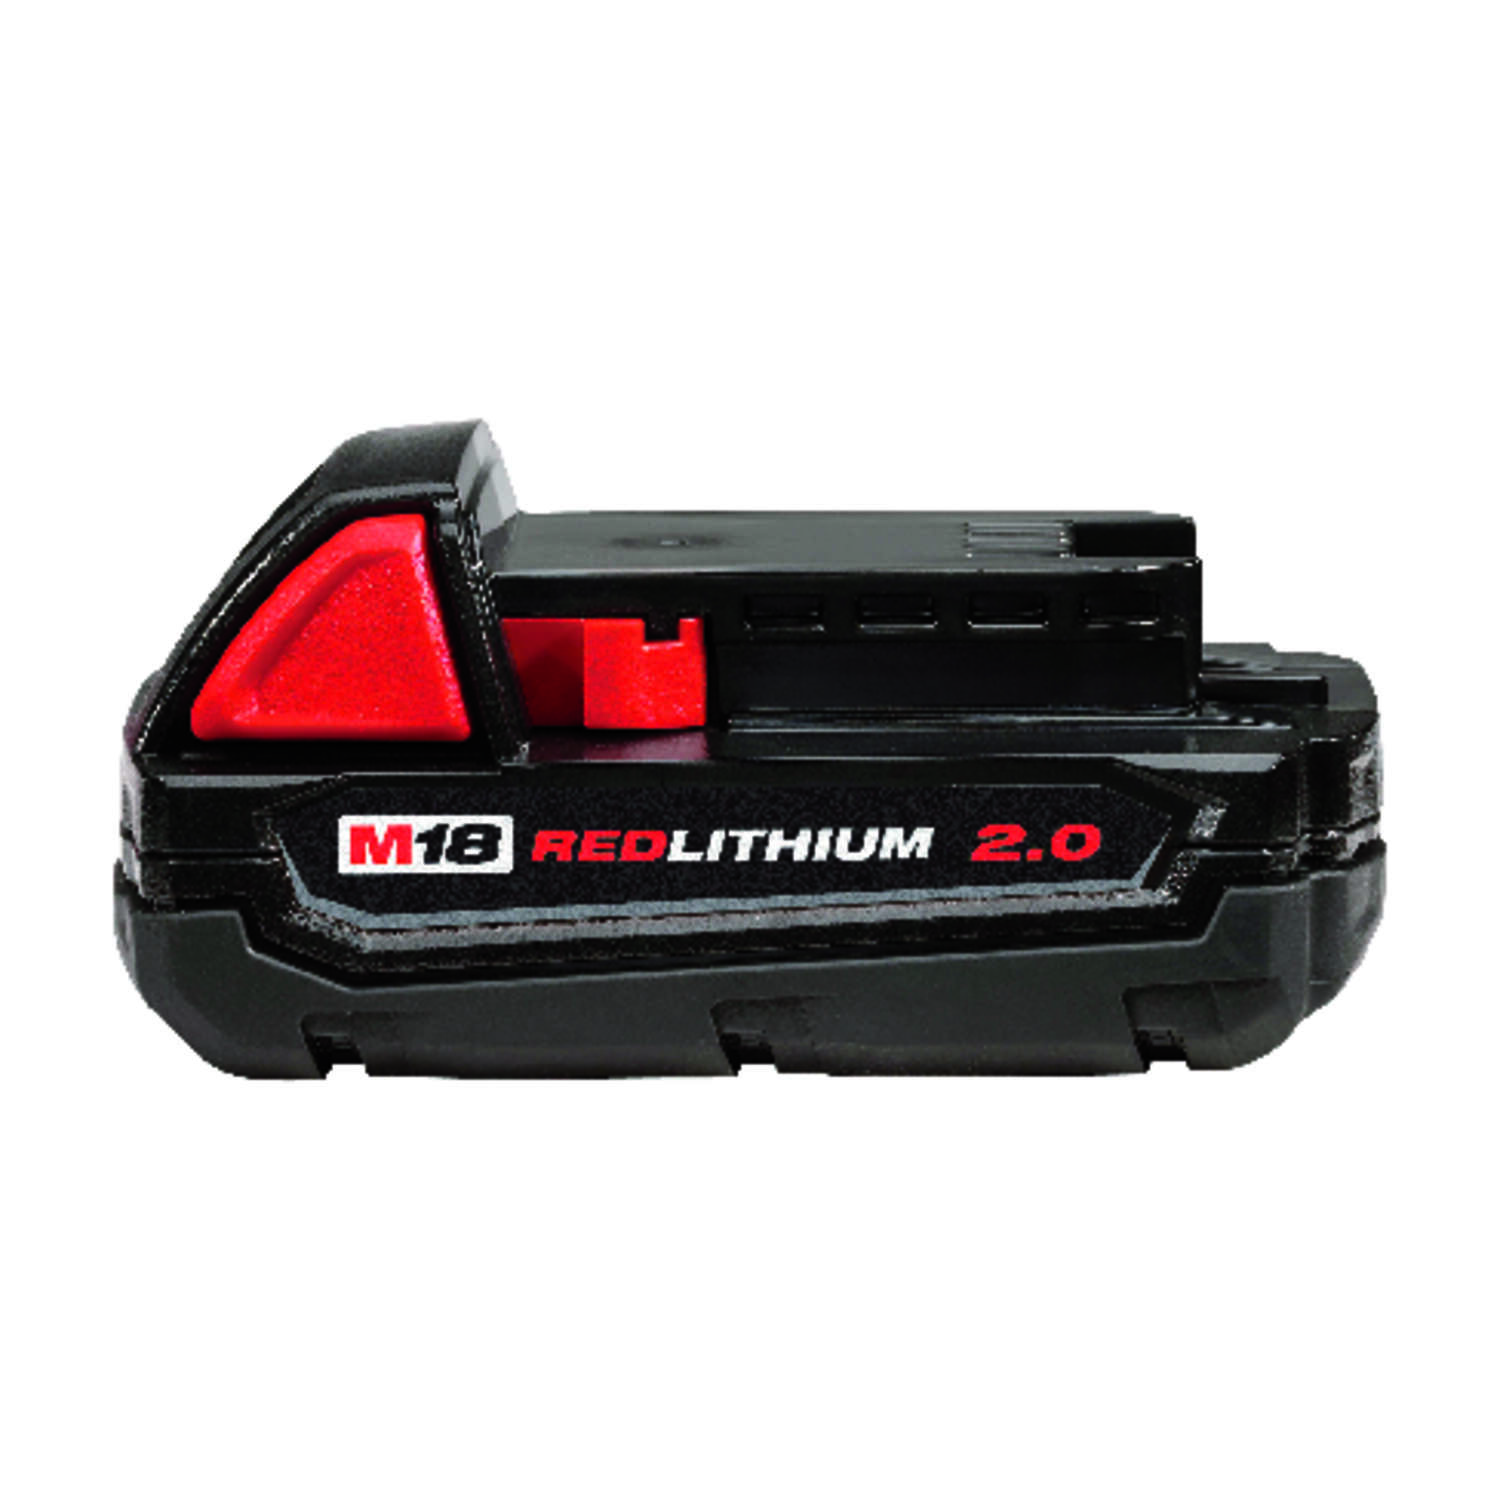 Milwaukee  M18 REDLITHIUM  18 volt 2 Ah Lithium-Ion  Compact Battery Pack  1 pc.